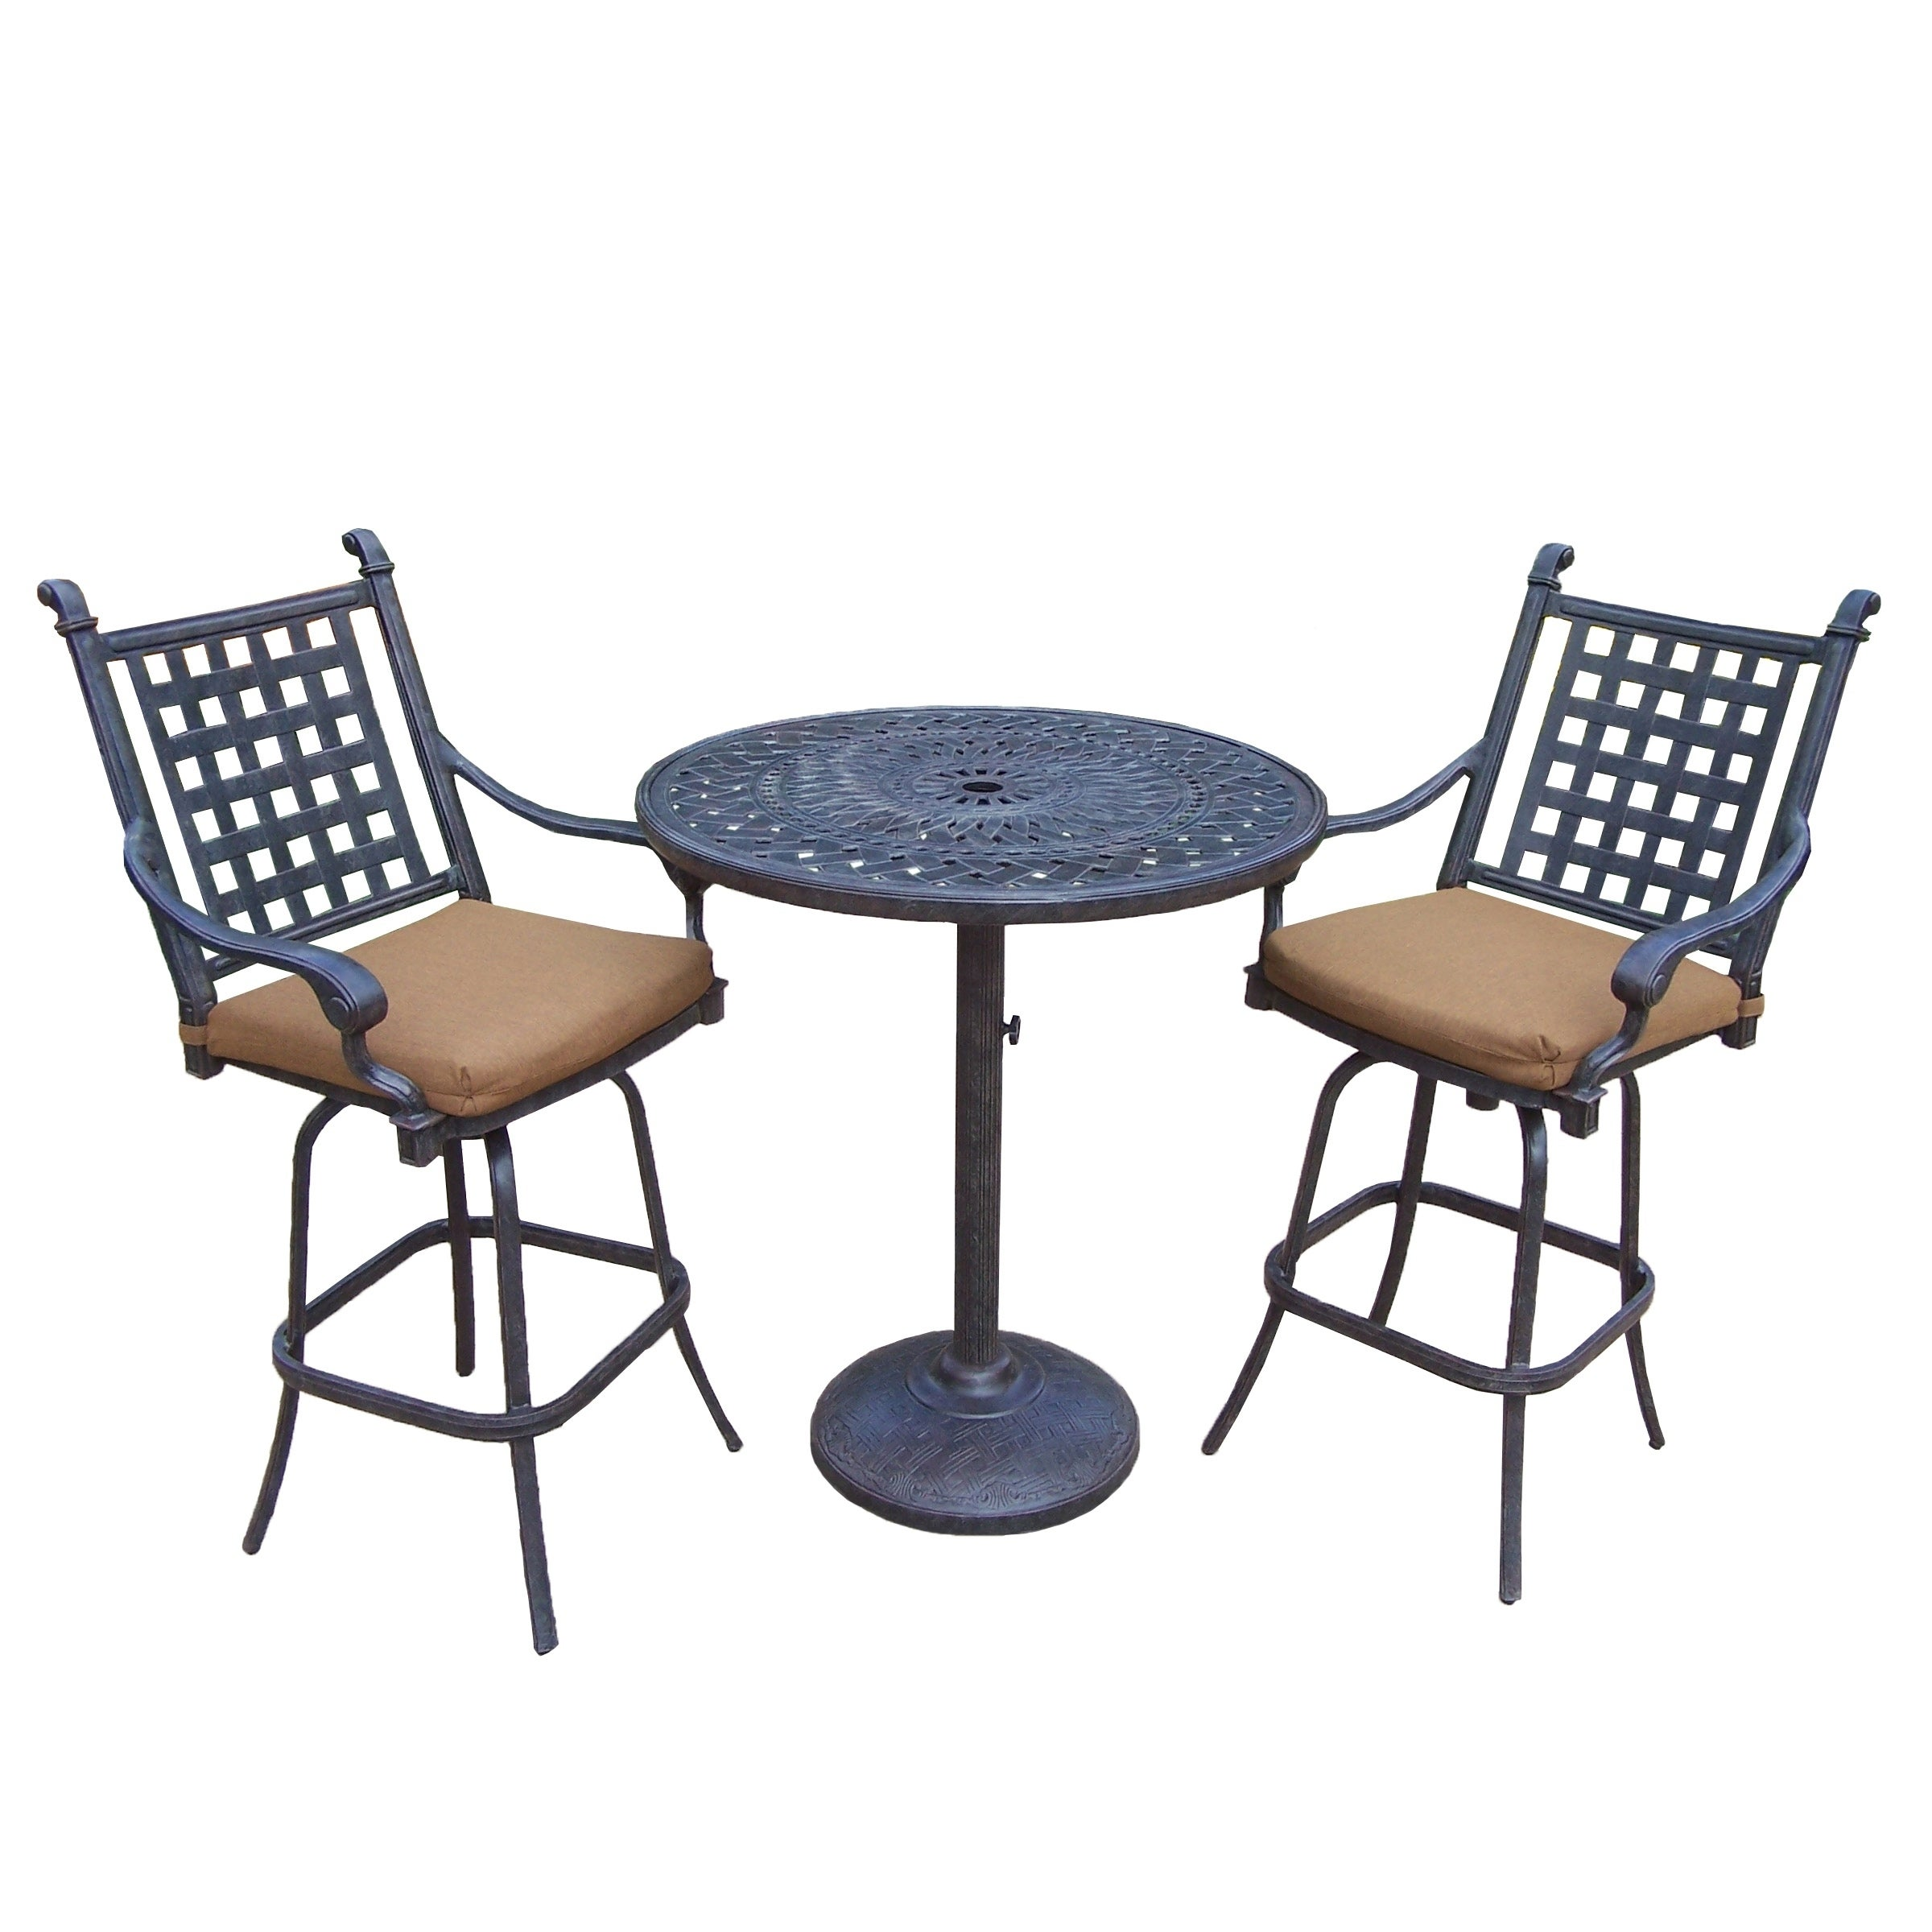 Sunbrella Cushioned Set With 13 Pc Dining Set, Extendable Table, 3 Pc Bar  Set, 3 Pc Chaise Lounge Set And 3 Pc Swivel Rocker Set   Free Shipping  Today ...